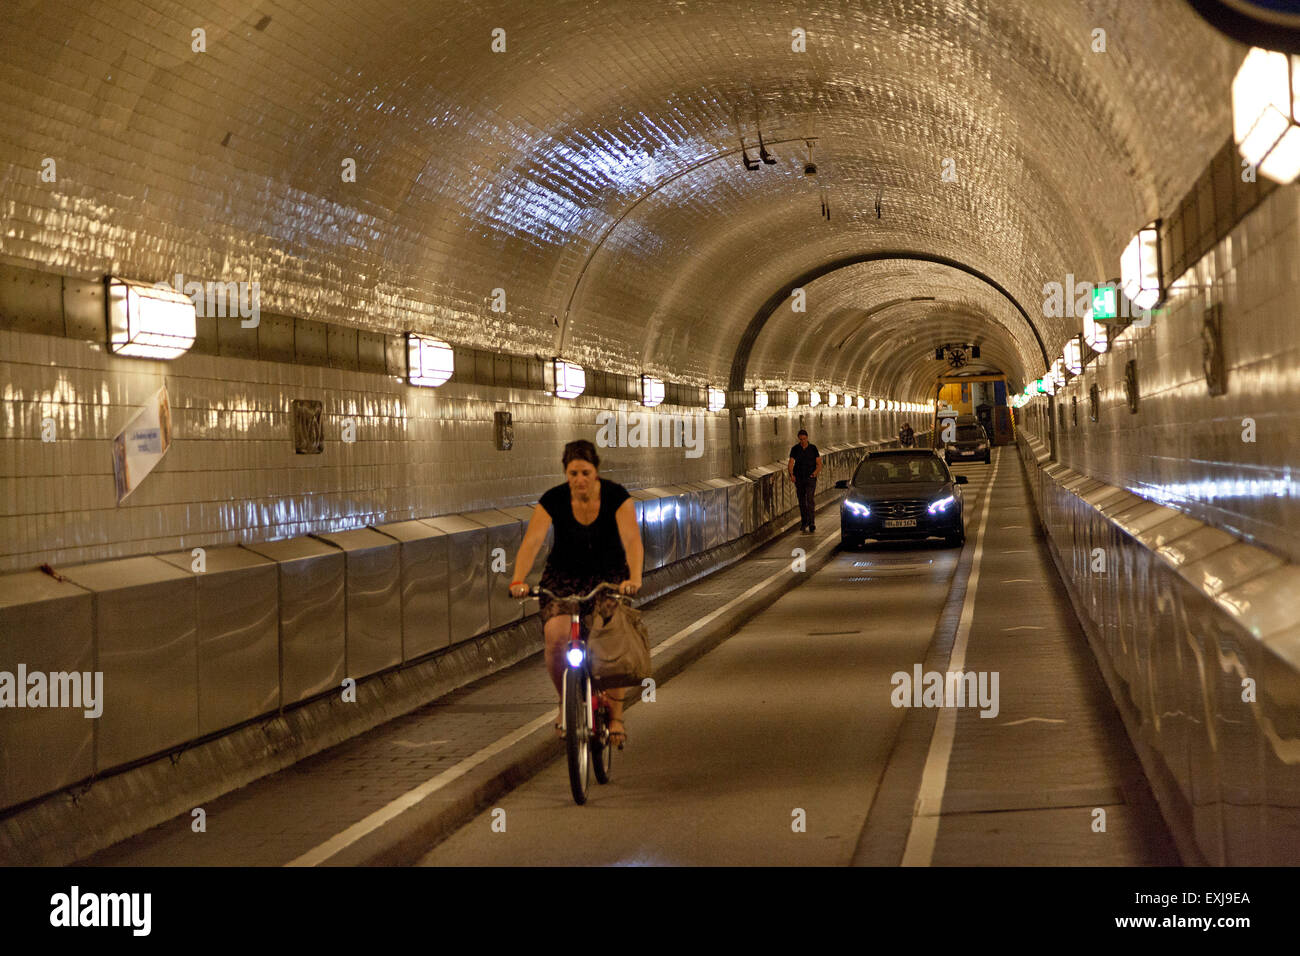 old elbe tunnel hamburg germany stock photo 85225122 alamy. Black Bedroom Furniture Sets. Home Design Ideas